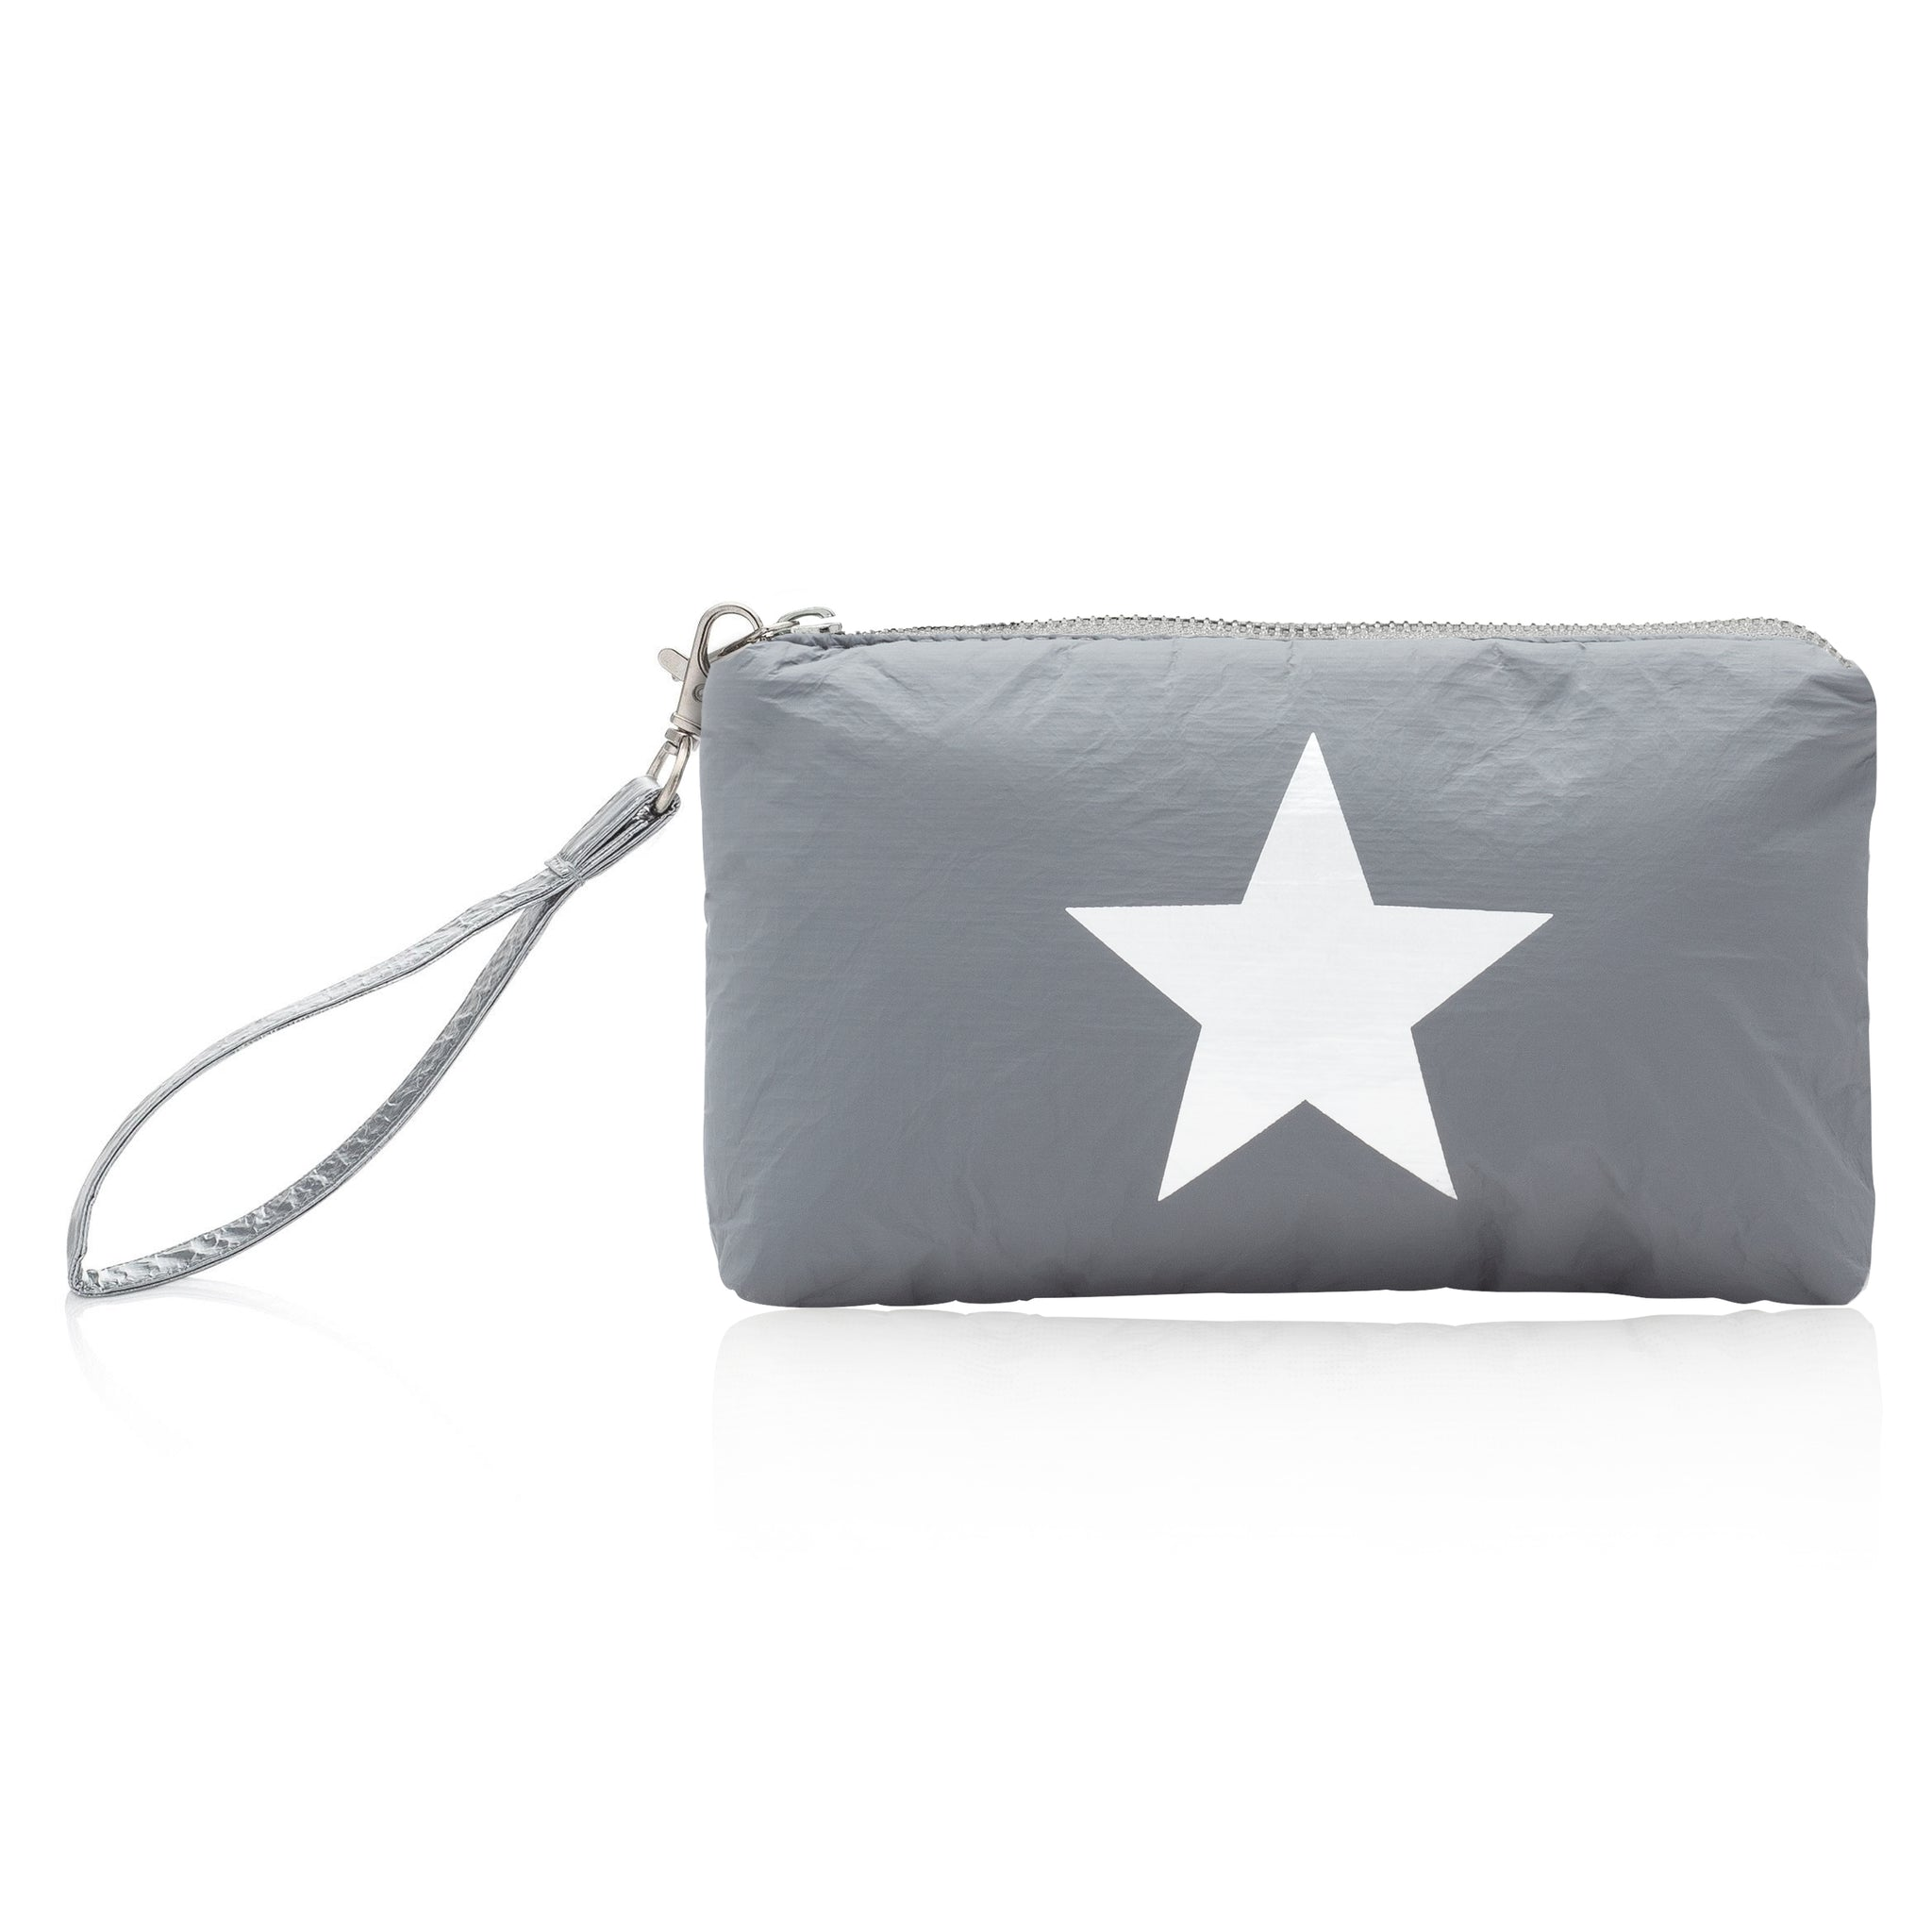 Wristlet - Cool Gray with Silver Star